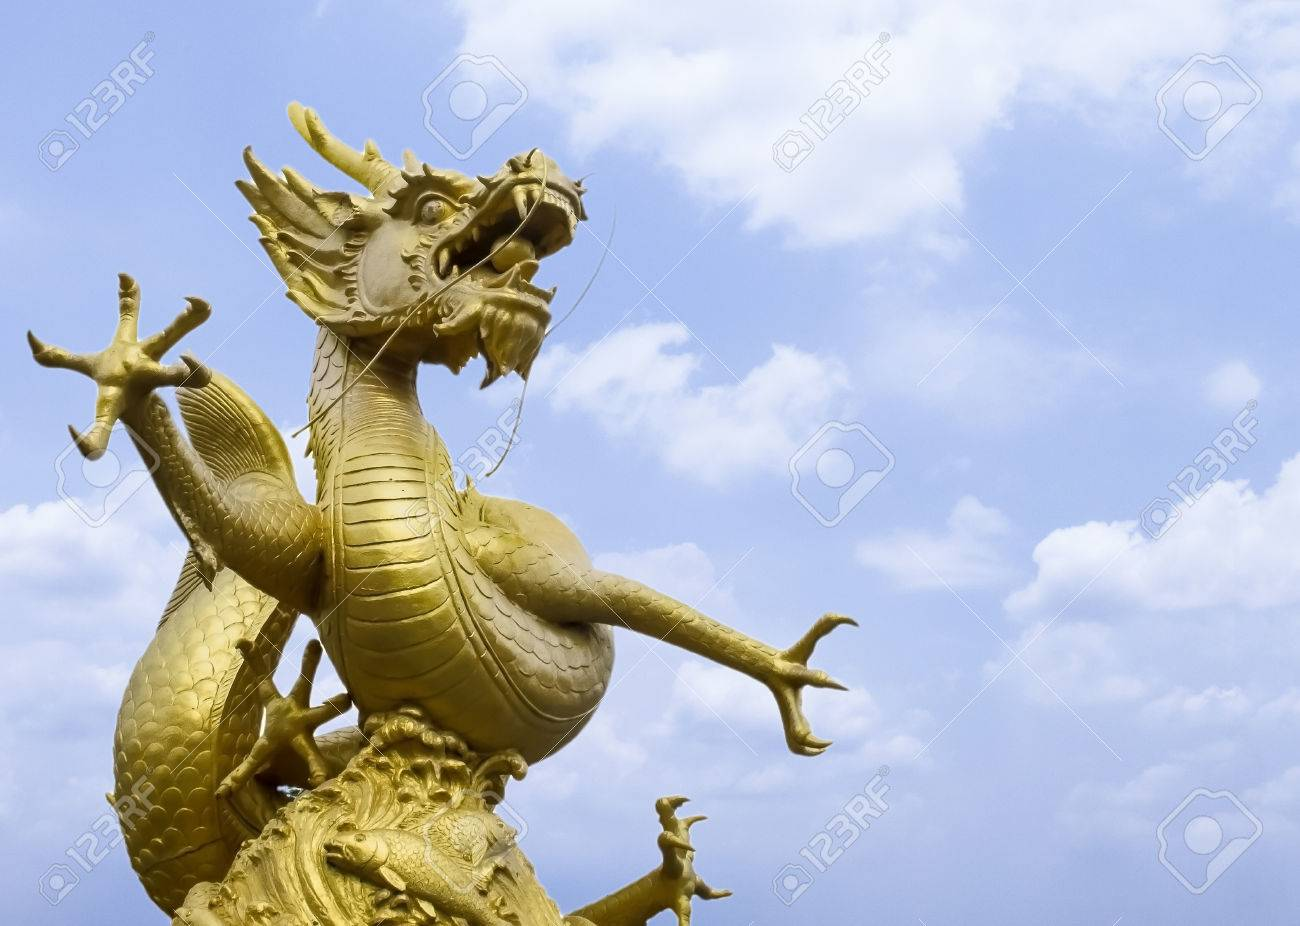 Giant Dragon Statue Giant Powerful Golden Dragon Statue At The Corner With Blue Sky